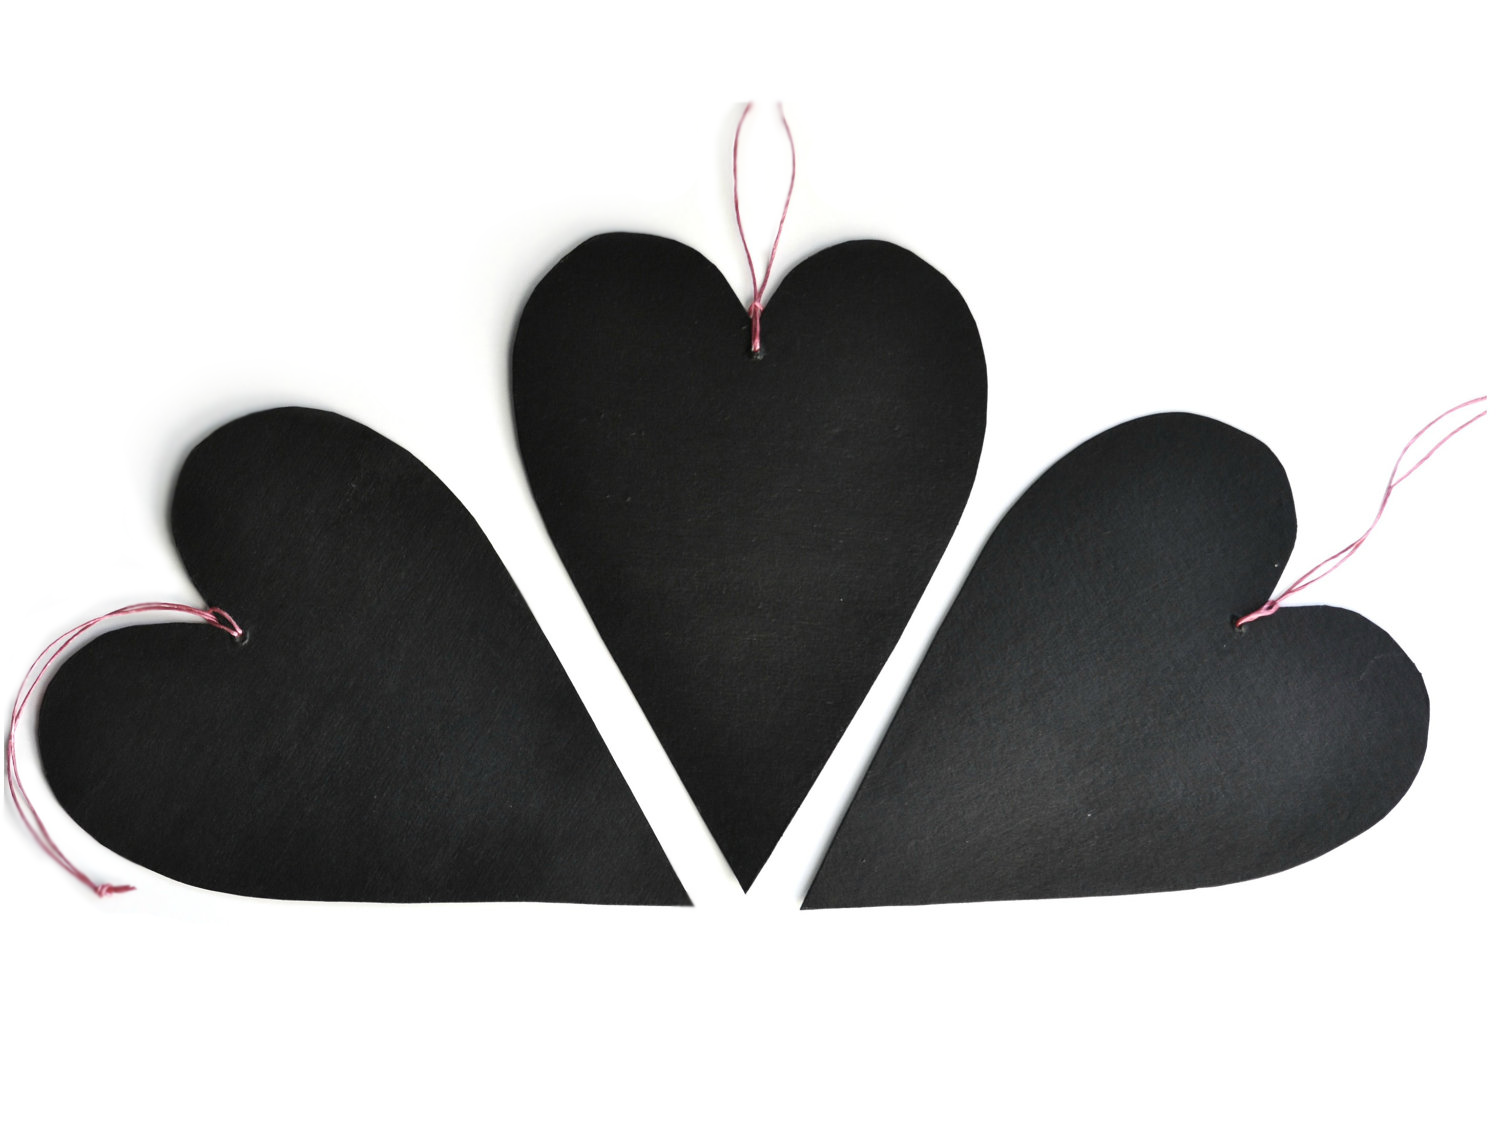 https://www.etsy.com/listing/92270347/set-of-3-black-hearts-chalkboards-made